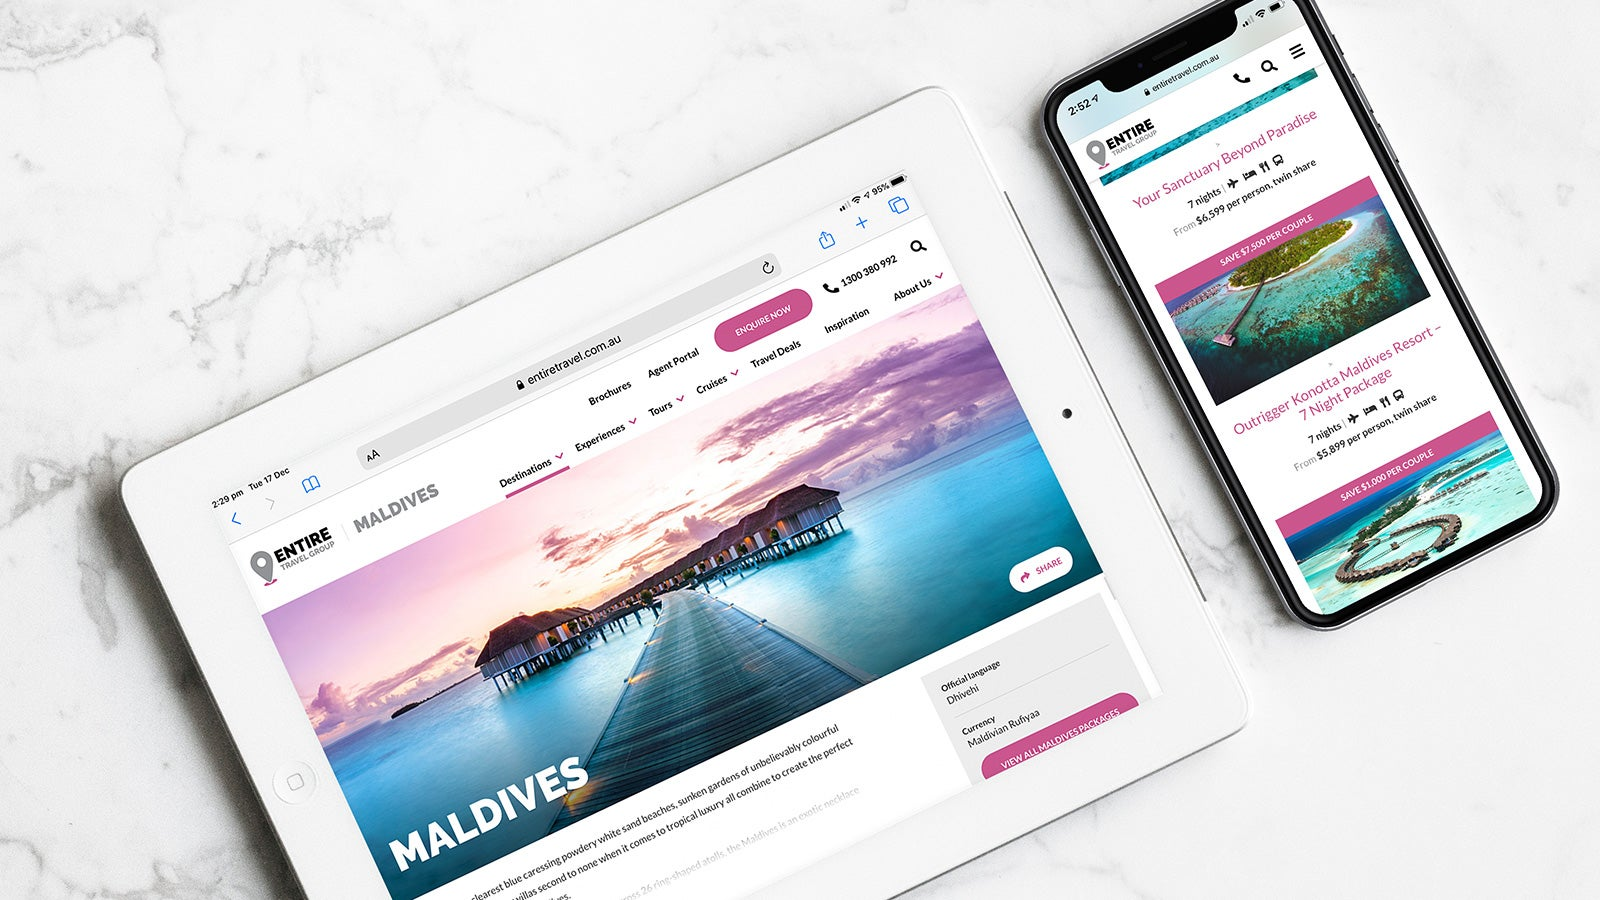 Entire Travel Group gallery image showing the Maldives on both an iPad and mobile phone